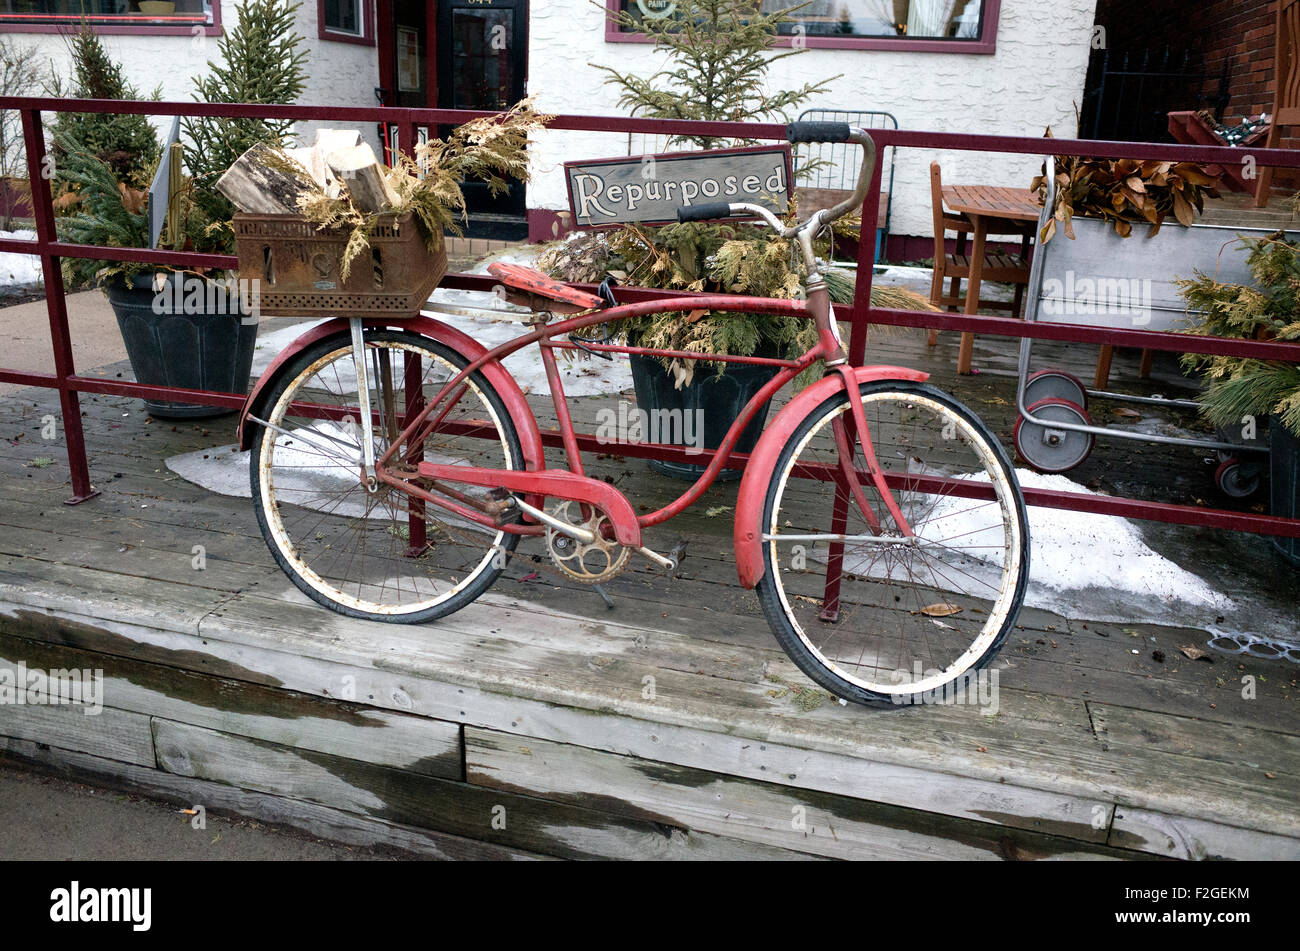 Repurposed vintage bicycle outside Mama's Happy upcycled shop on Grand Ave. St Paul Minnesota MN USA - Stock Image